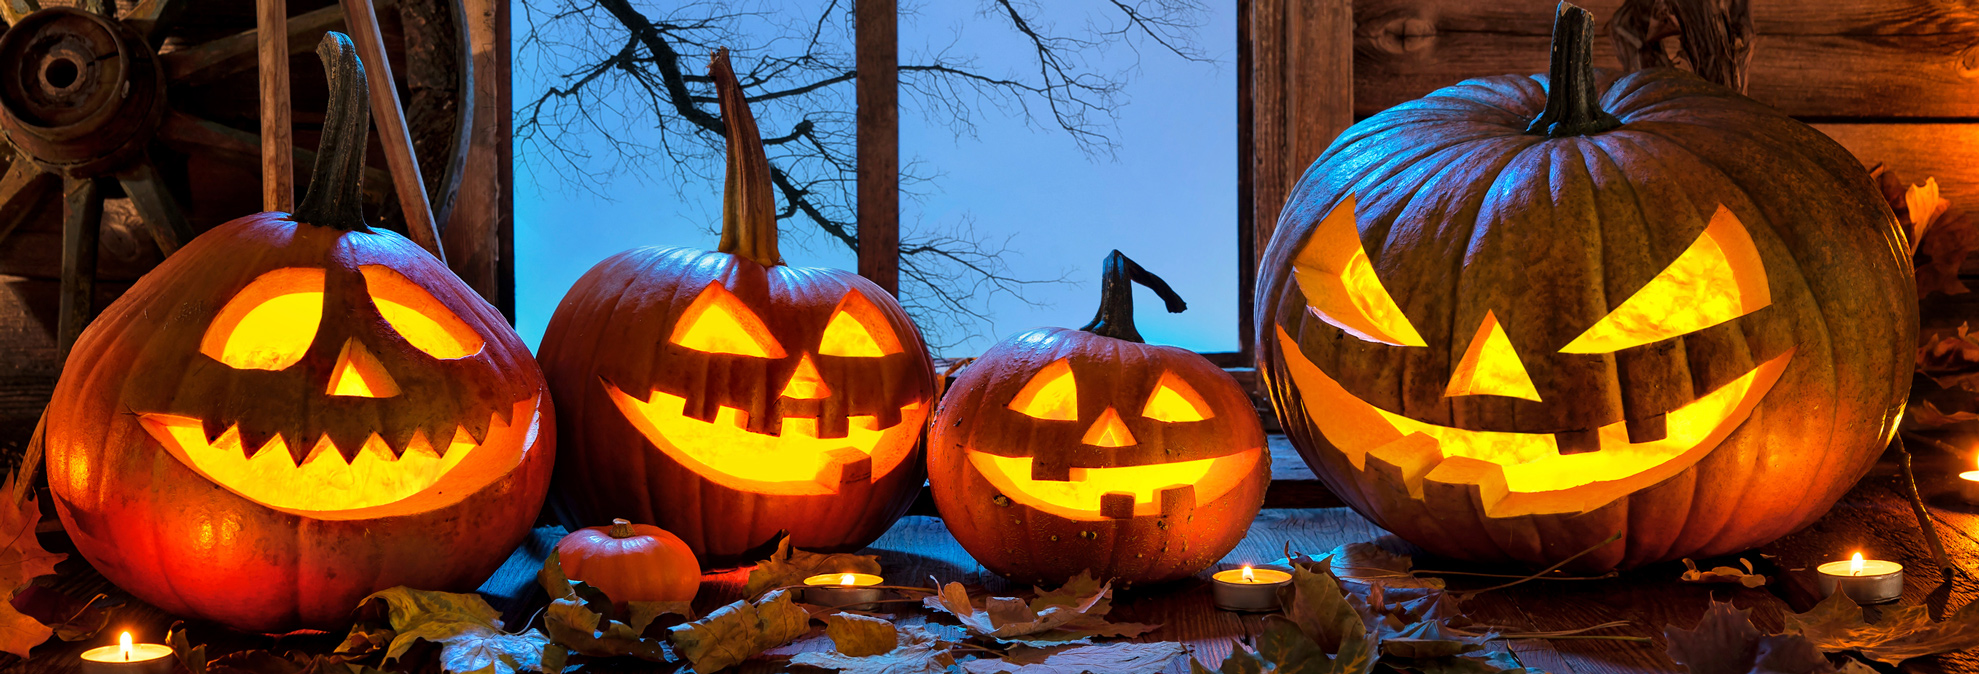 Pumpkin Carving Safety Tips Consumer Reports